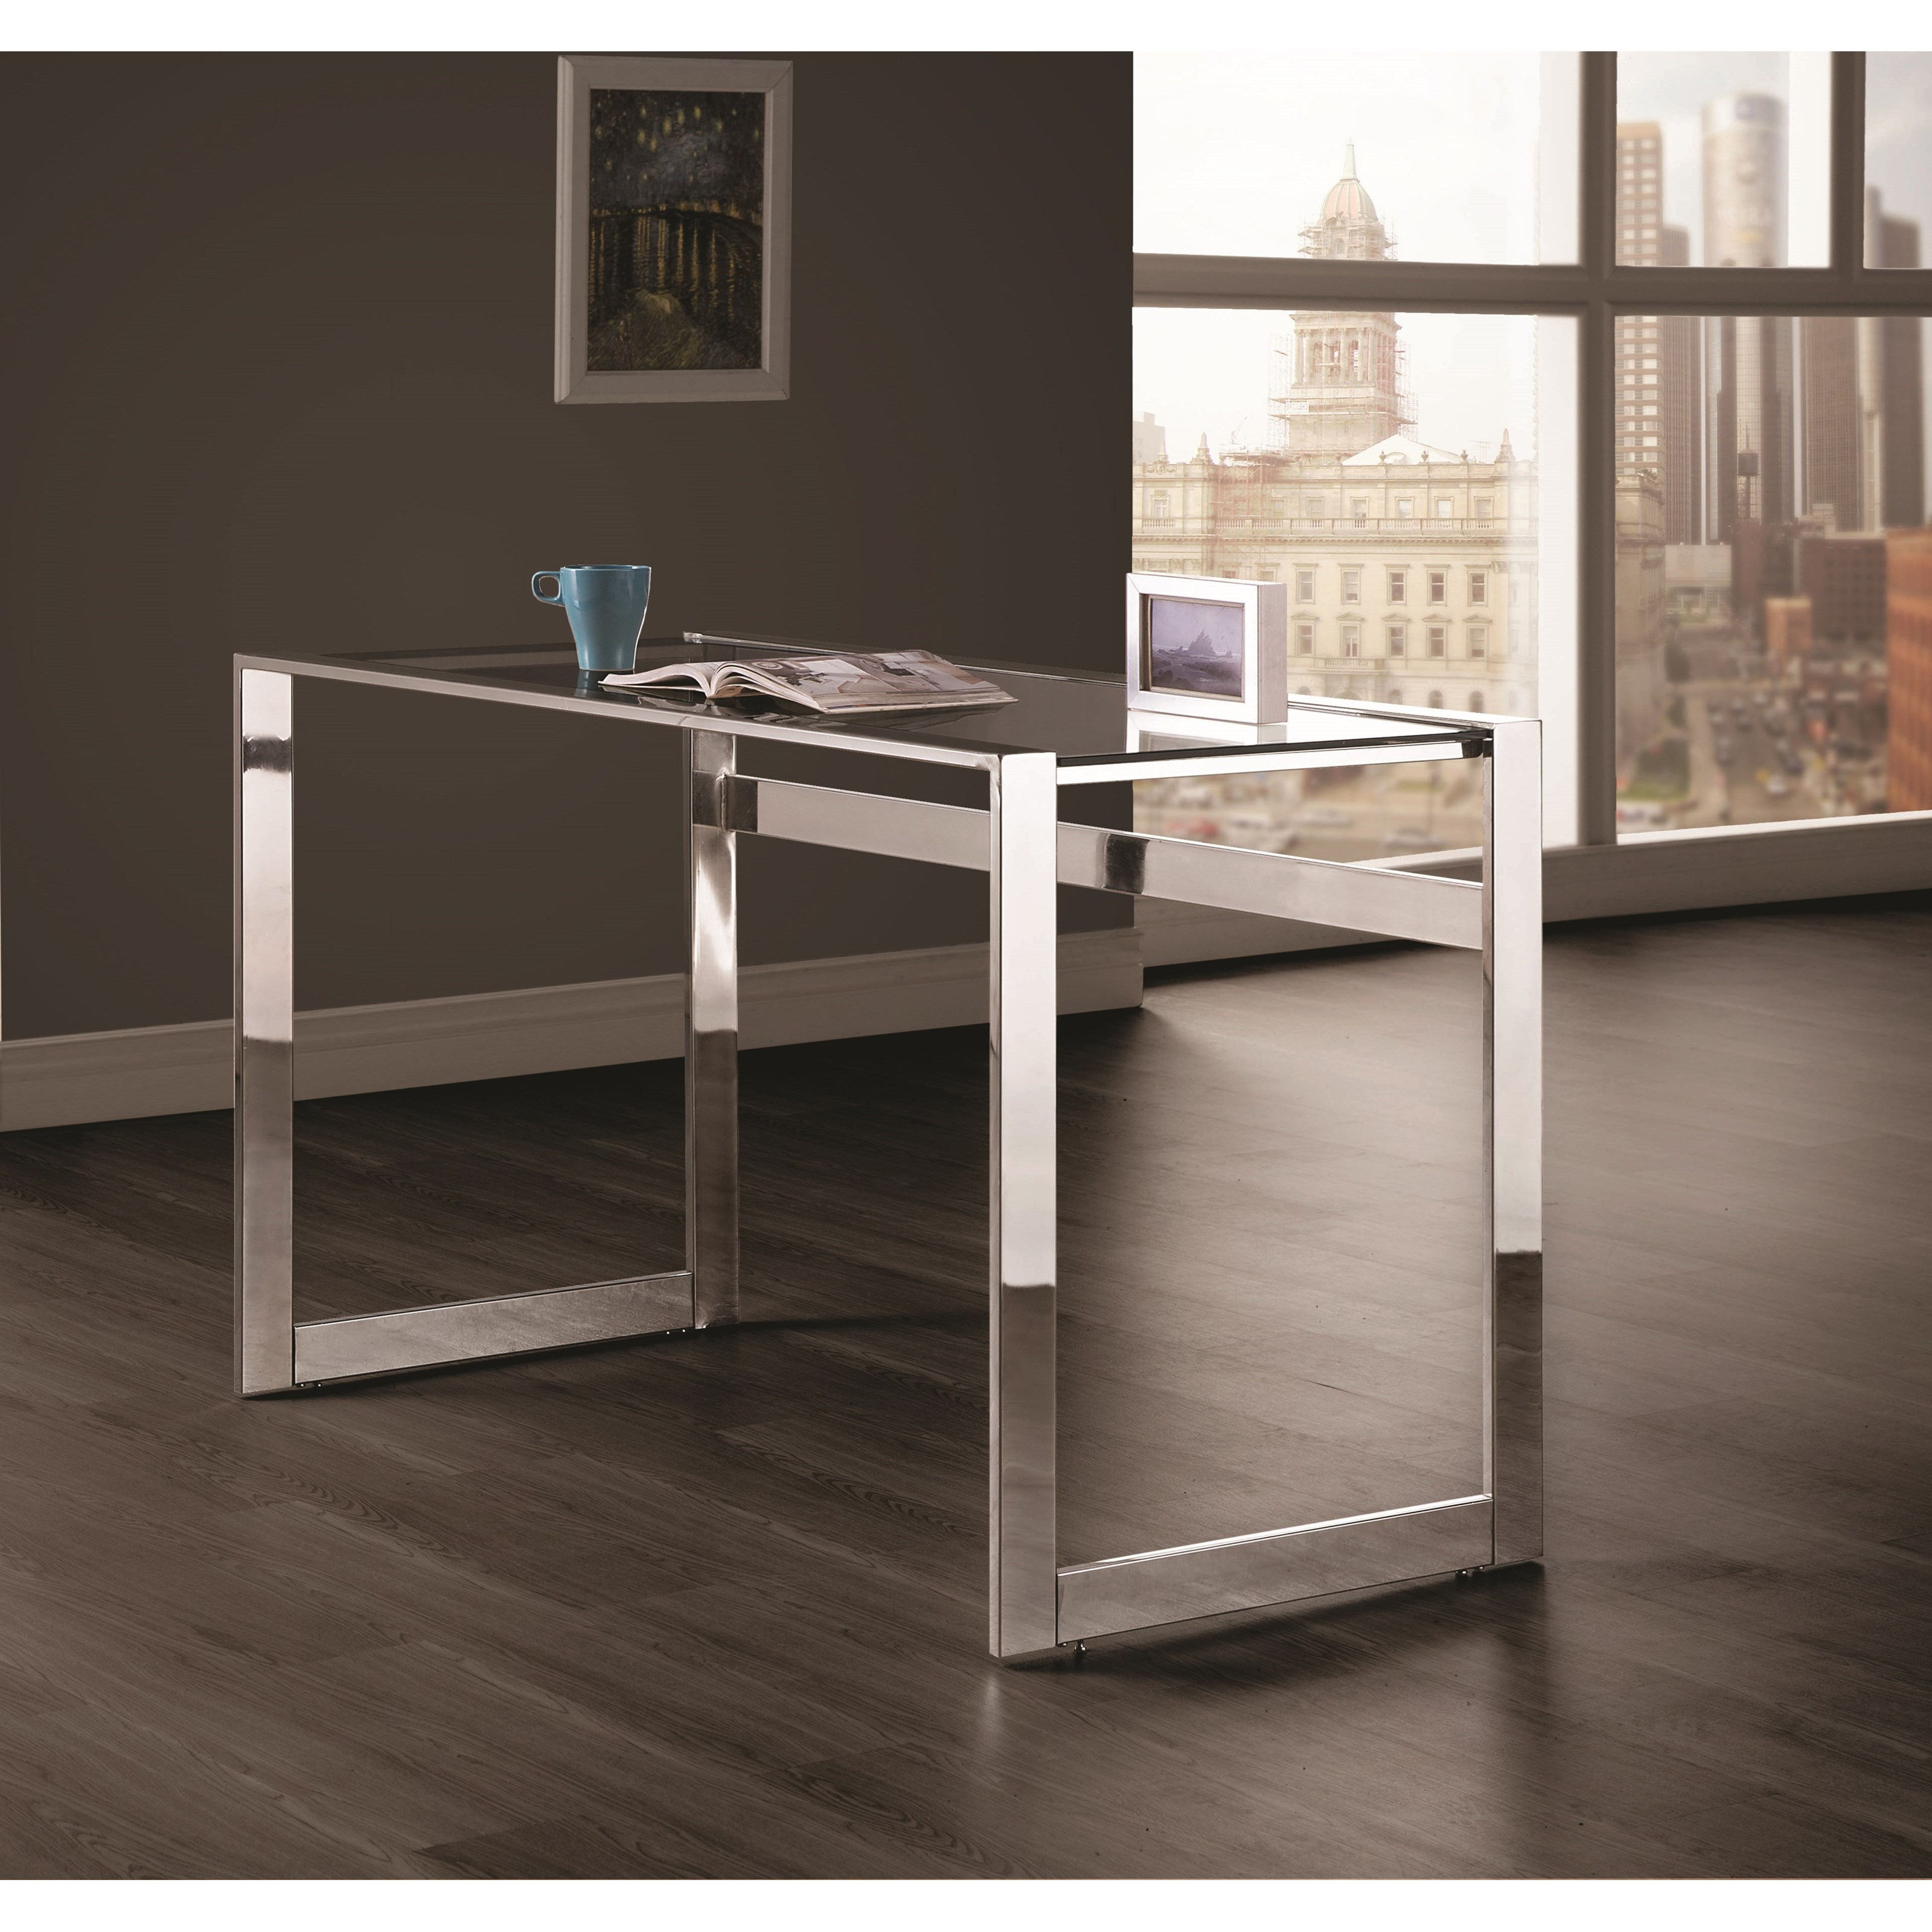 Home Office Desk by Coaster at Red Knot